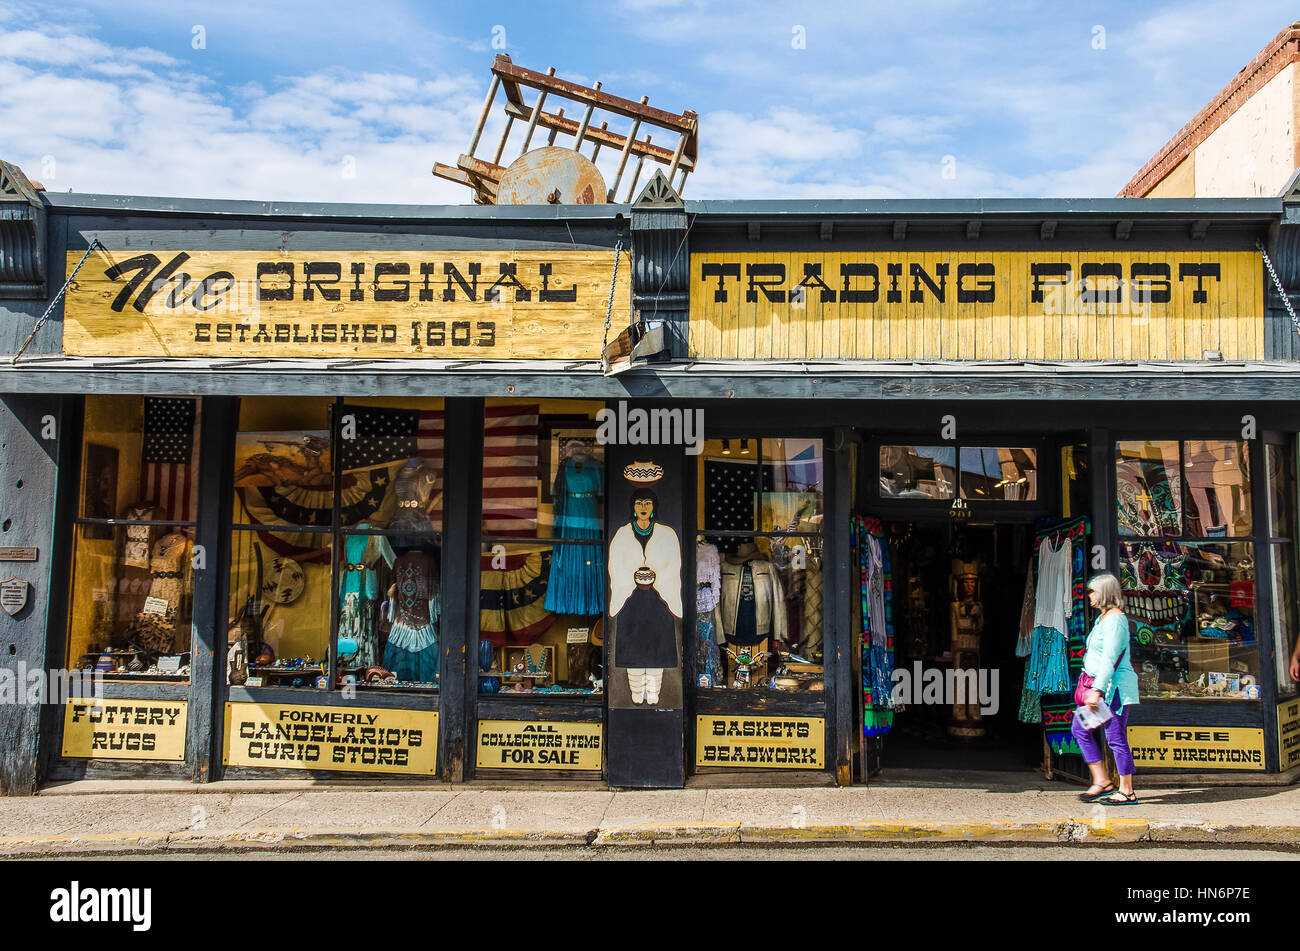 Native American Trading Store High Resolution Stock Photography And Images Alamy